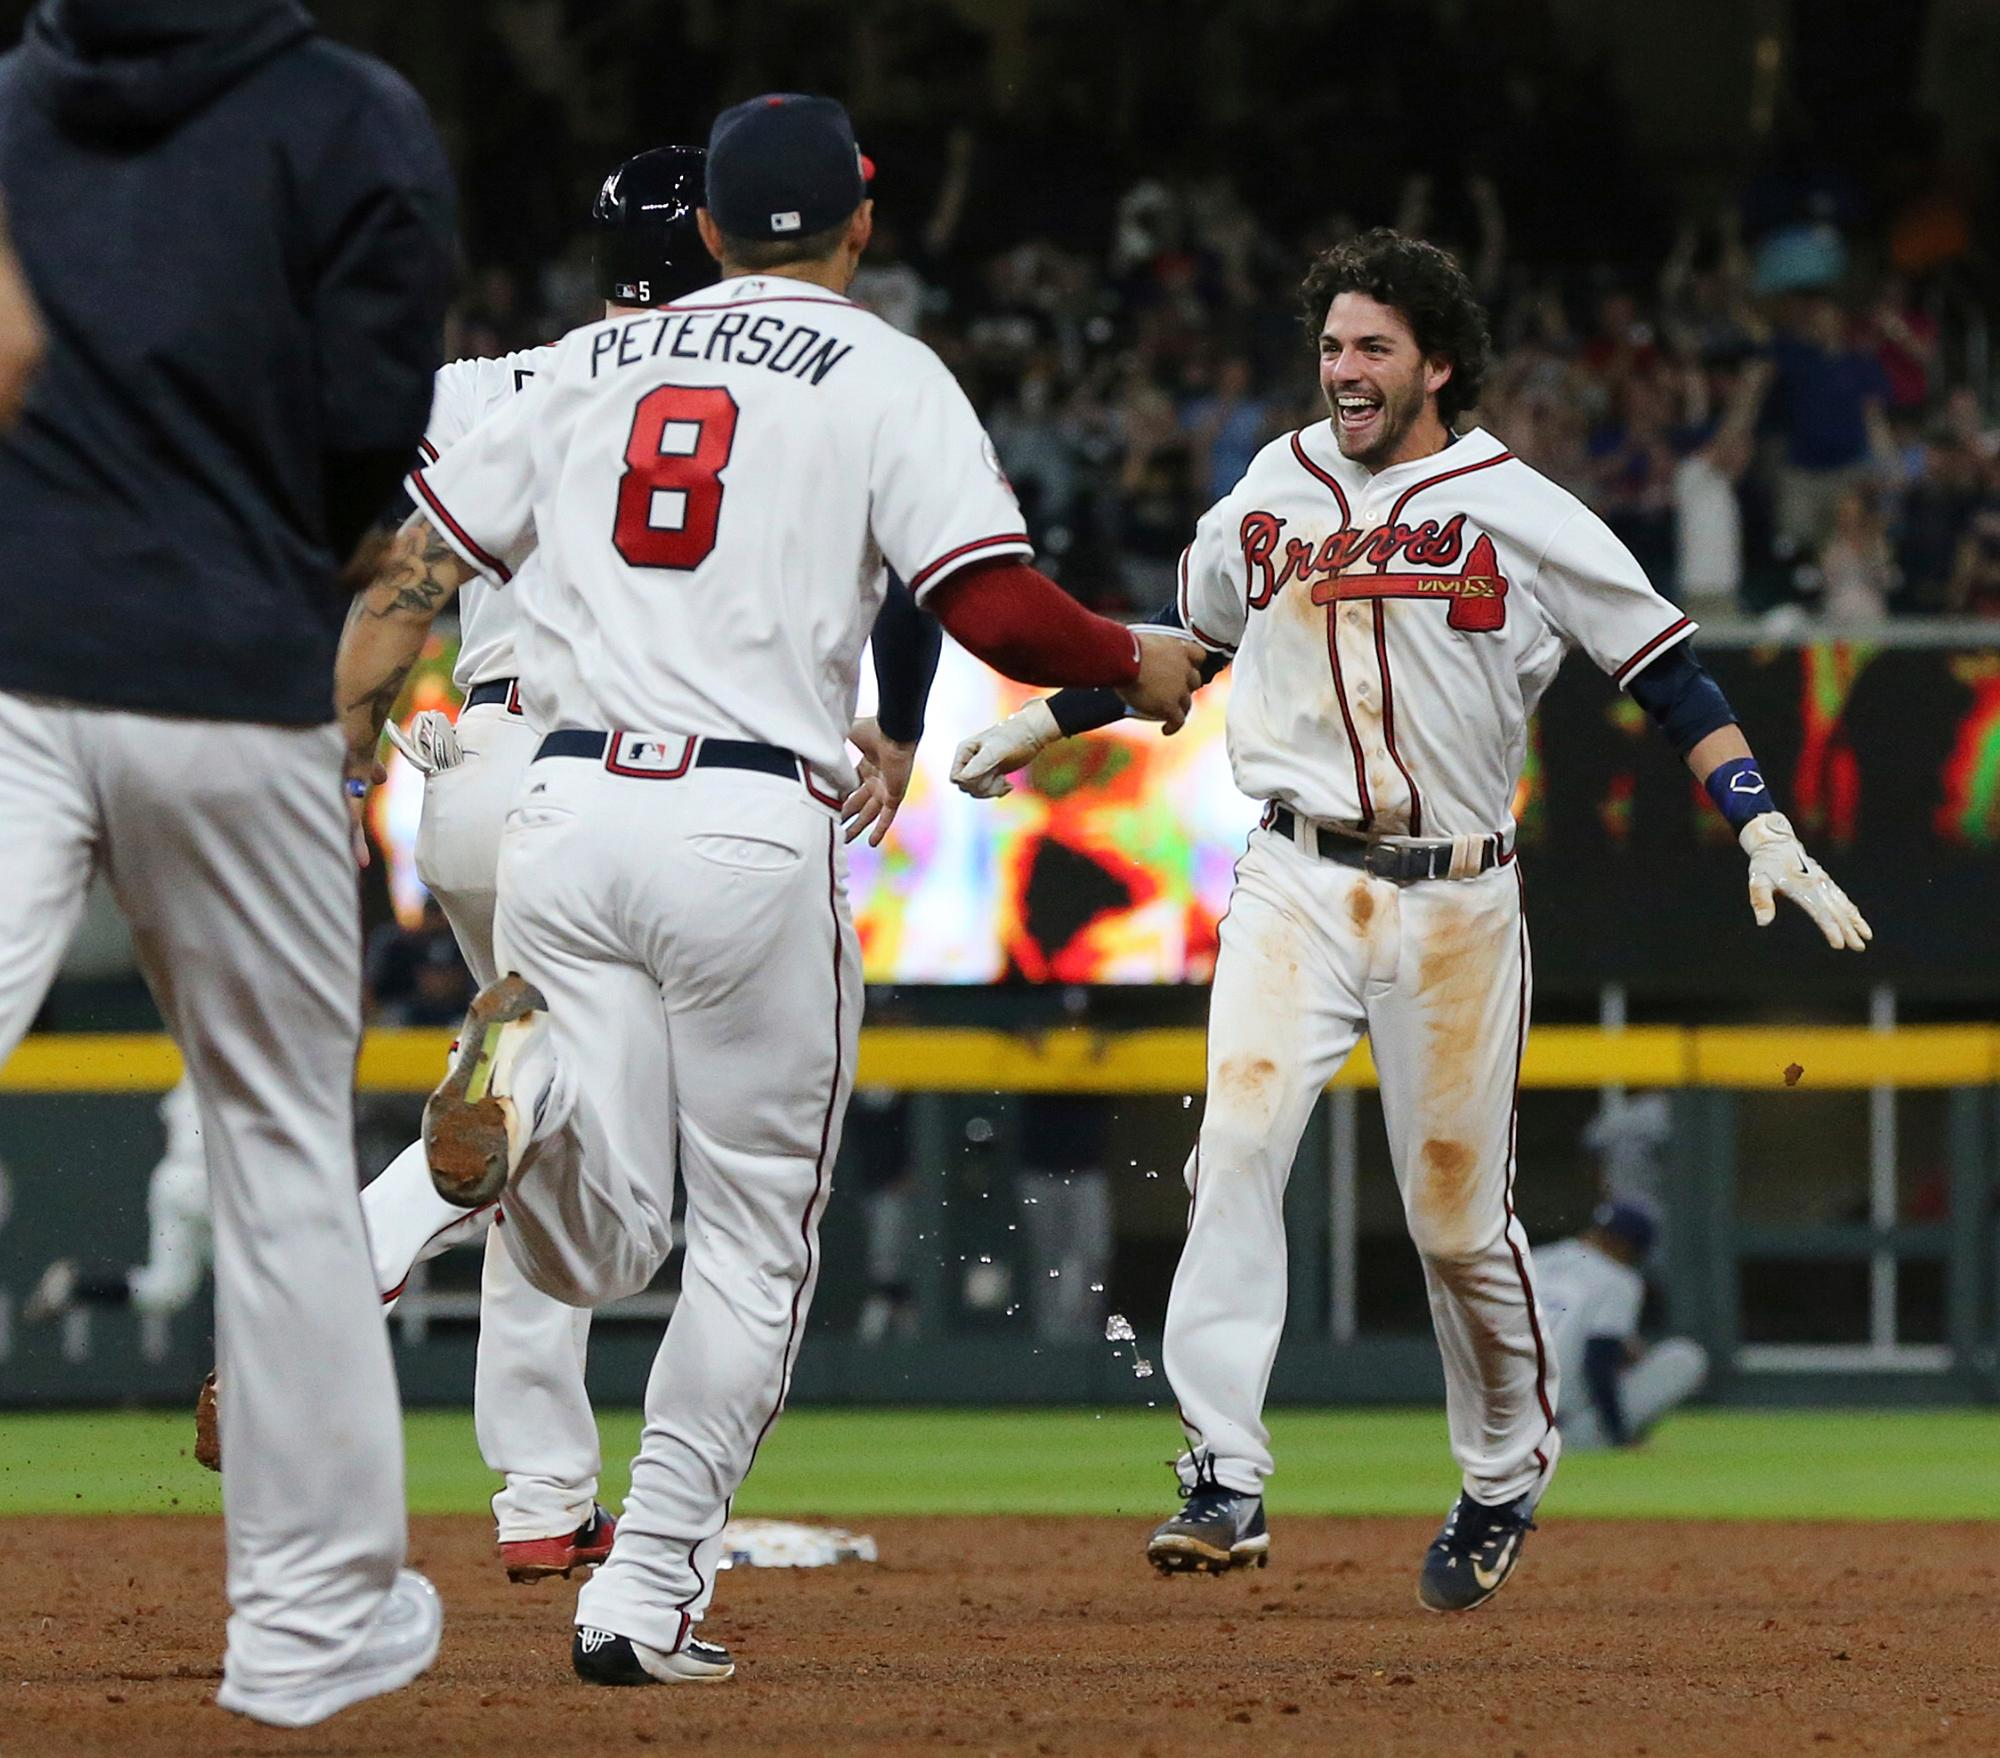 The Atlanta Braves rush the field to celebrate Dansby Swanson as he hits a walk-off single to beat the San Diego Padres, 5-4, in the ninth inning of a baseball game in Atlanta on Monday, April 17, 2017. (Curtis Compton/Atlanta Journal-Constitution via AP)